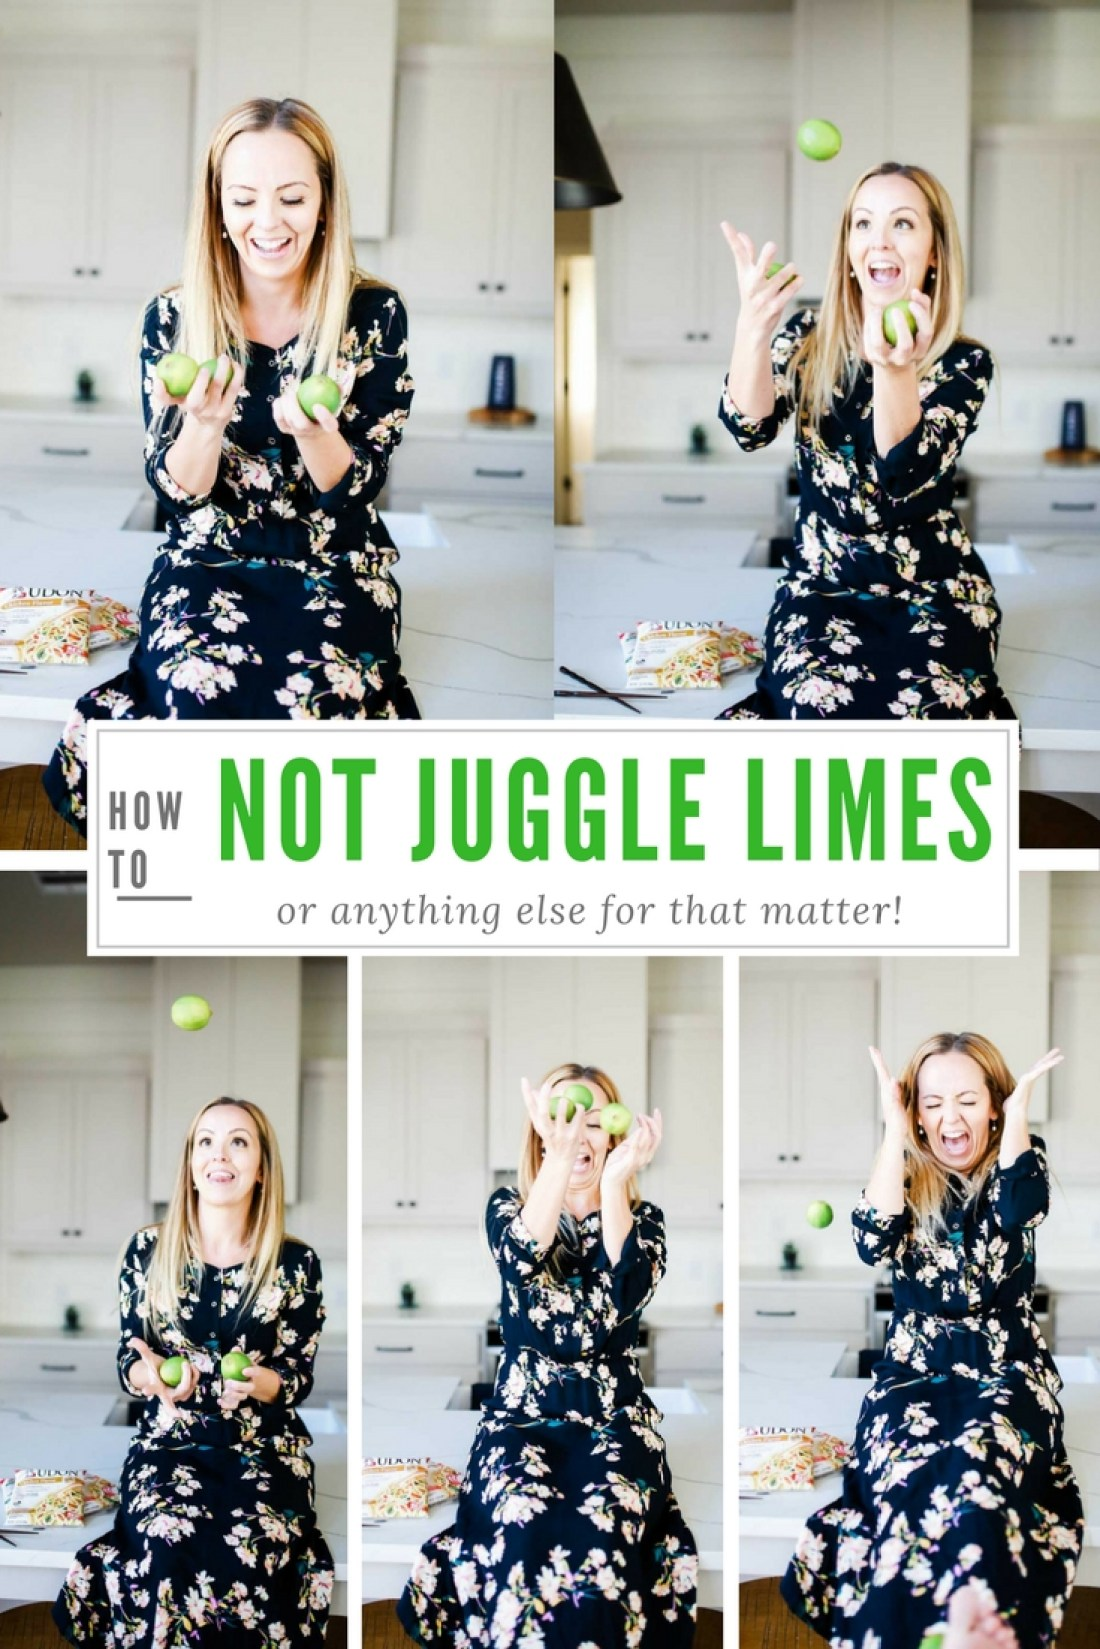 rhis is how not to juggle!